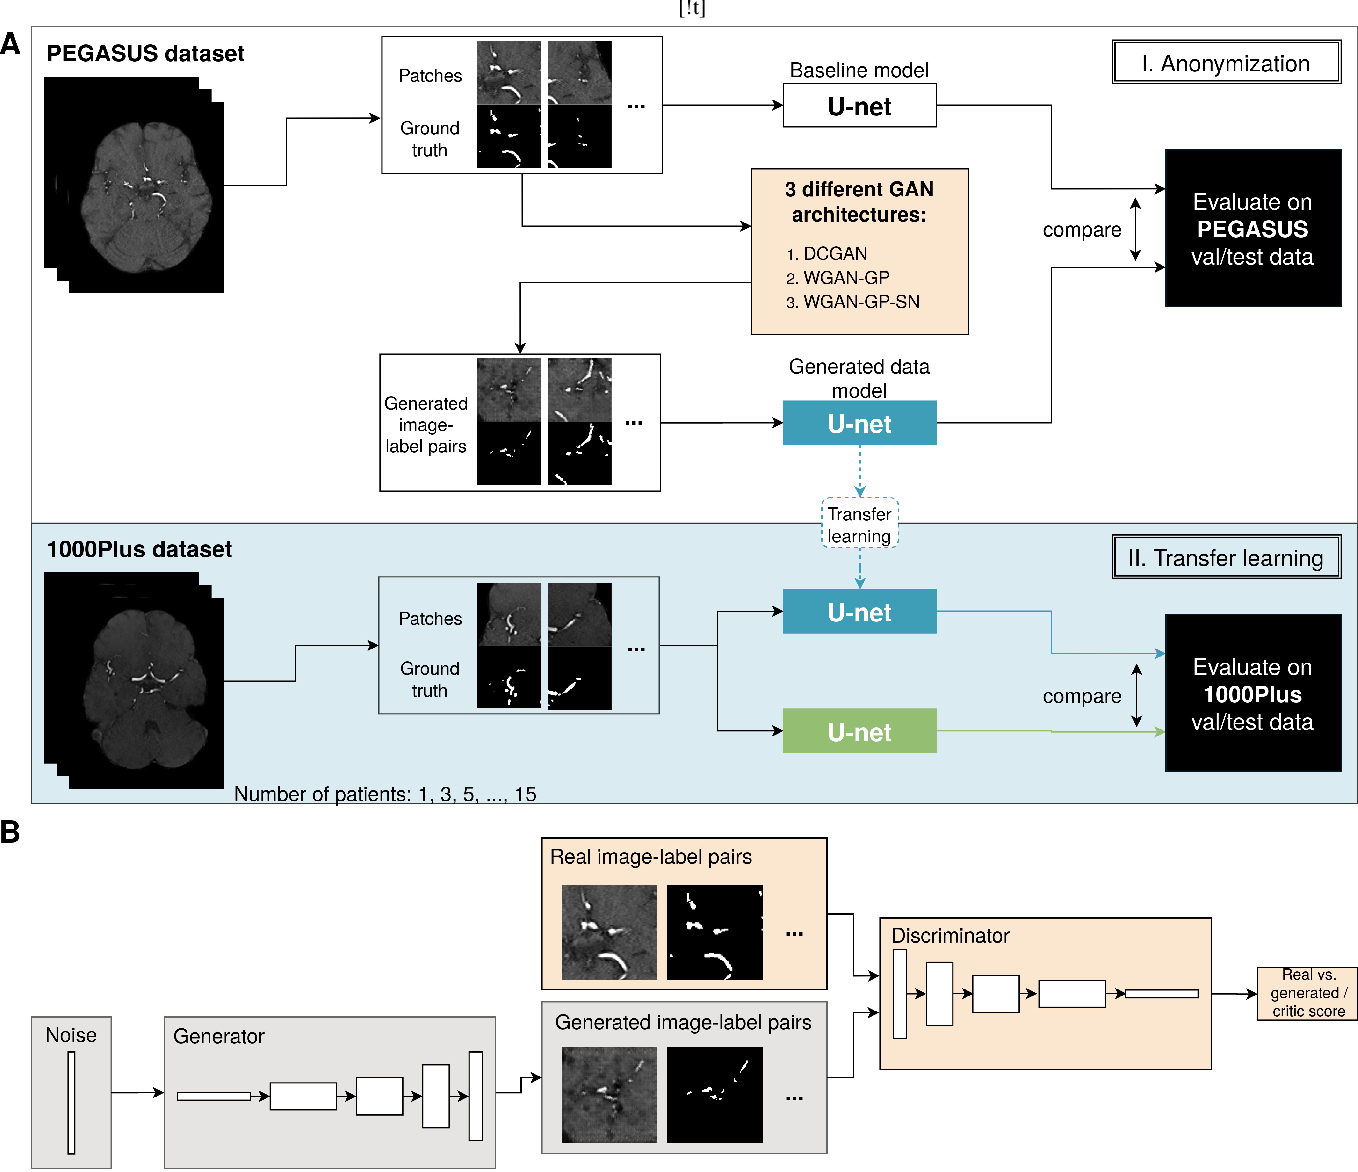 Figure 1 for Anonymization of labeled TOF-MRA images for brain vessel segmentation using generative adversarial networks